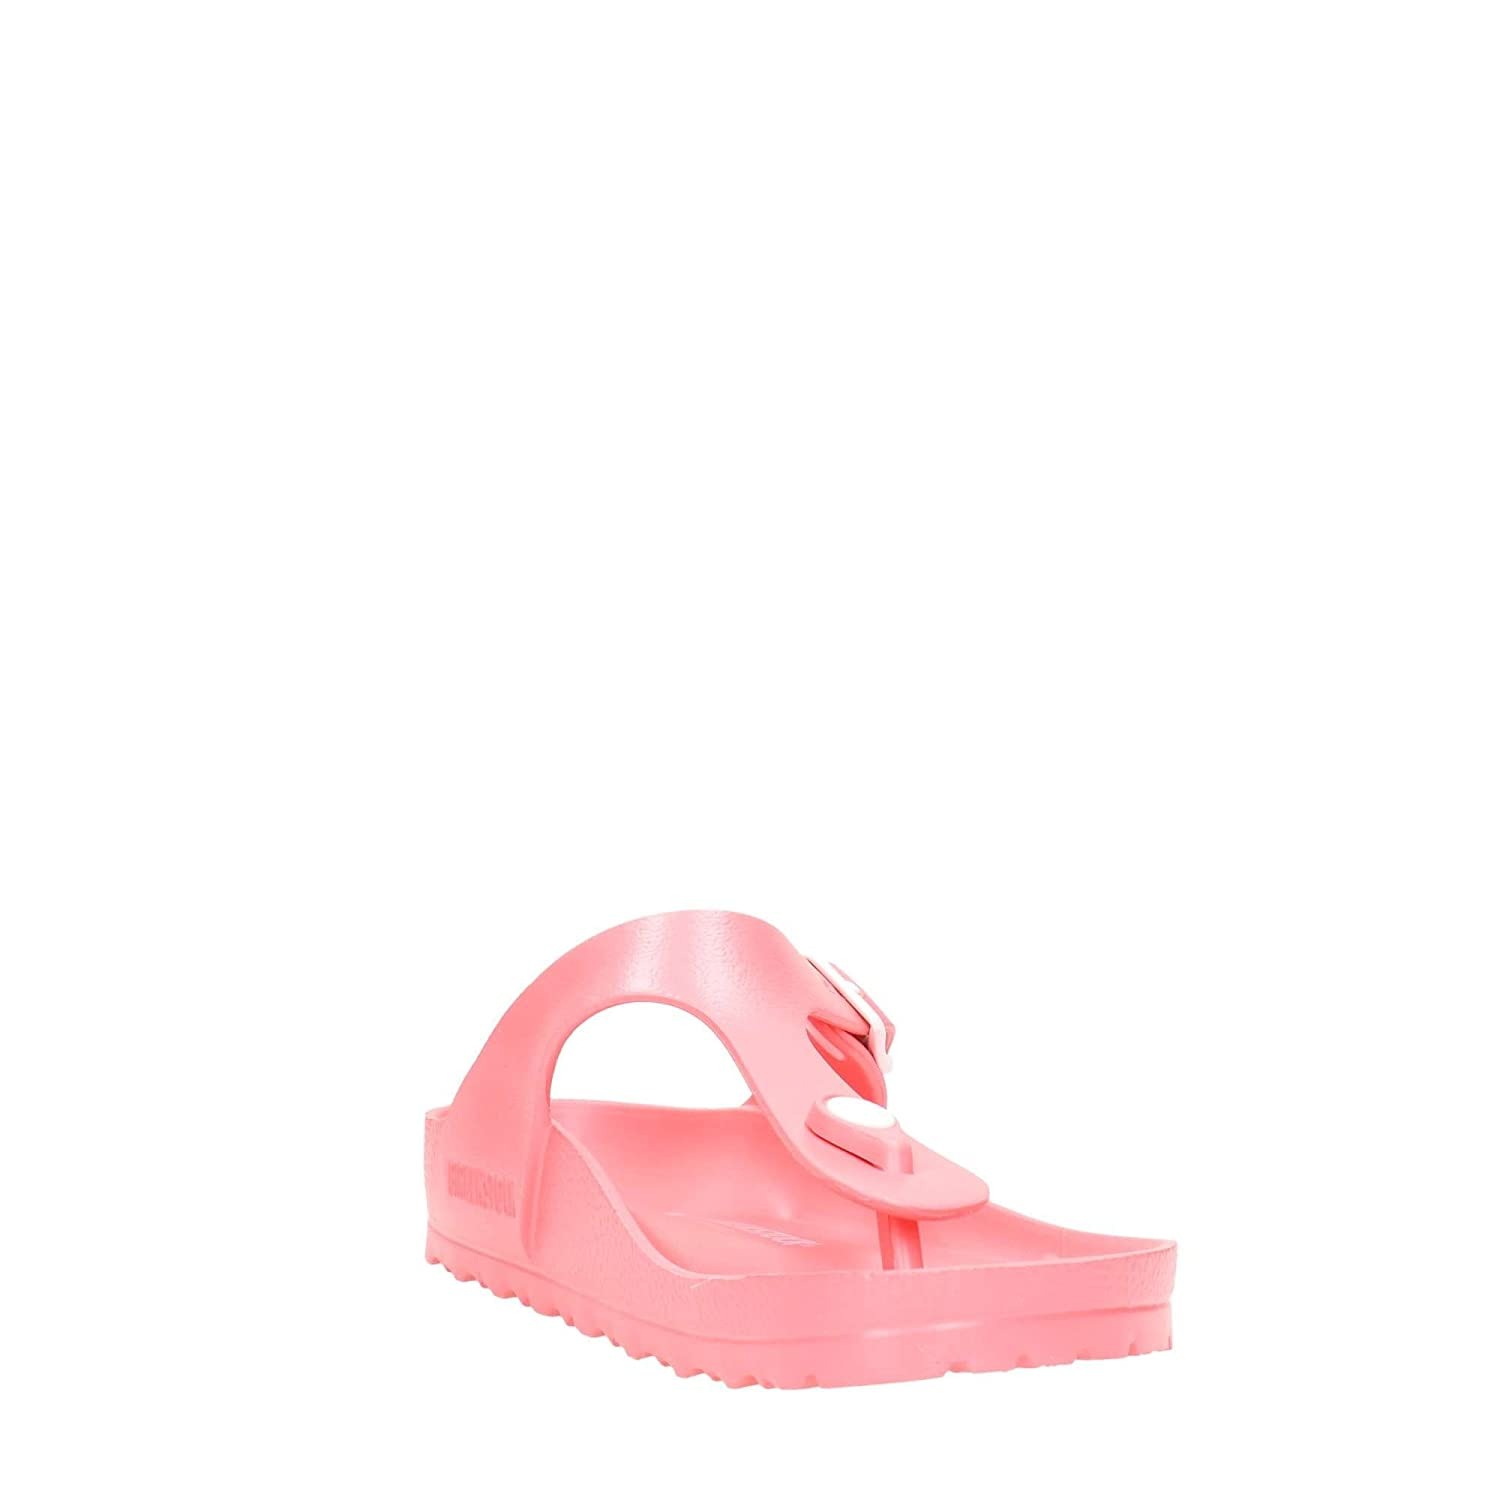 288dd93bed8 Birkenstock Gizeh EVA Soft Flip Flops Women  Amazon.co.uk  Shoes   Bags